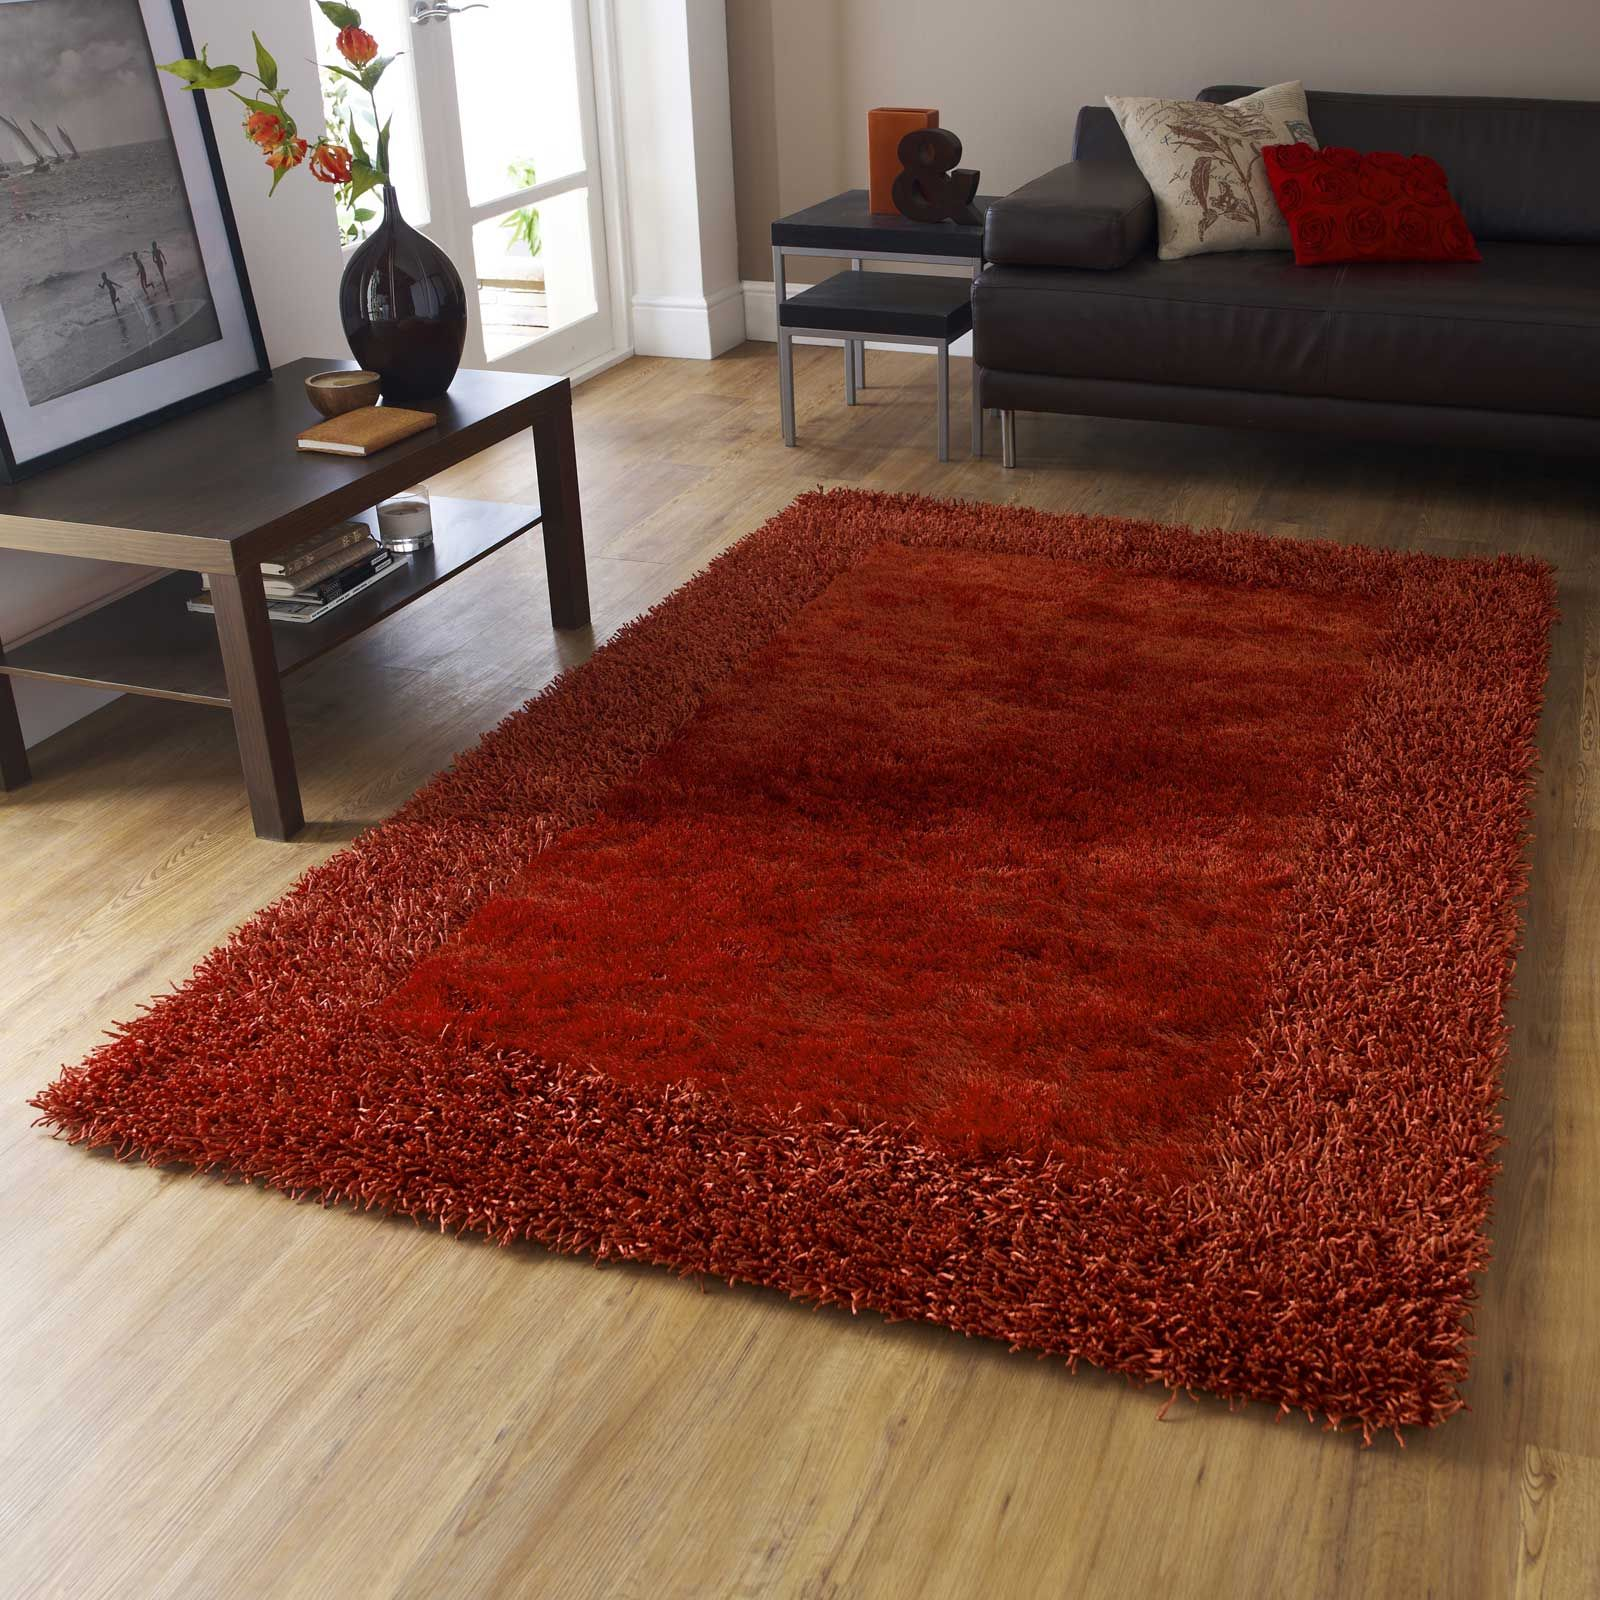 Sable 2 Rugs in Burnt Orange is handmade in China with a soft, silky Polyester pile with a contrasting viscose border. The high density pile is made up of ultra fine fibres to create a stunning, shimmering effect.